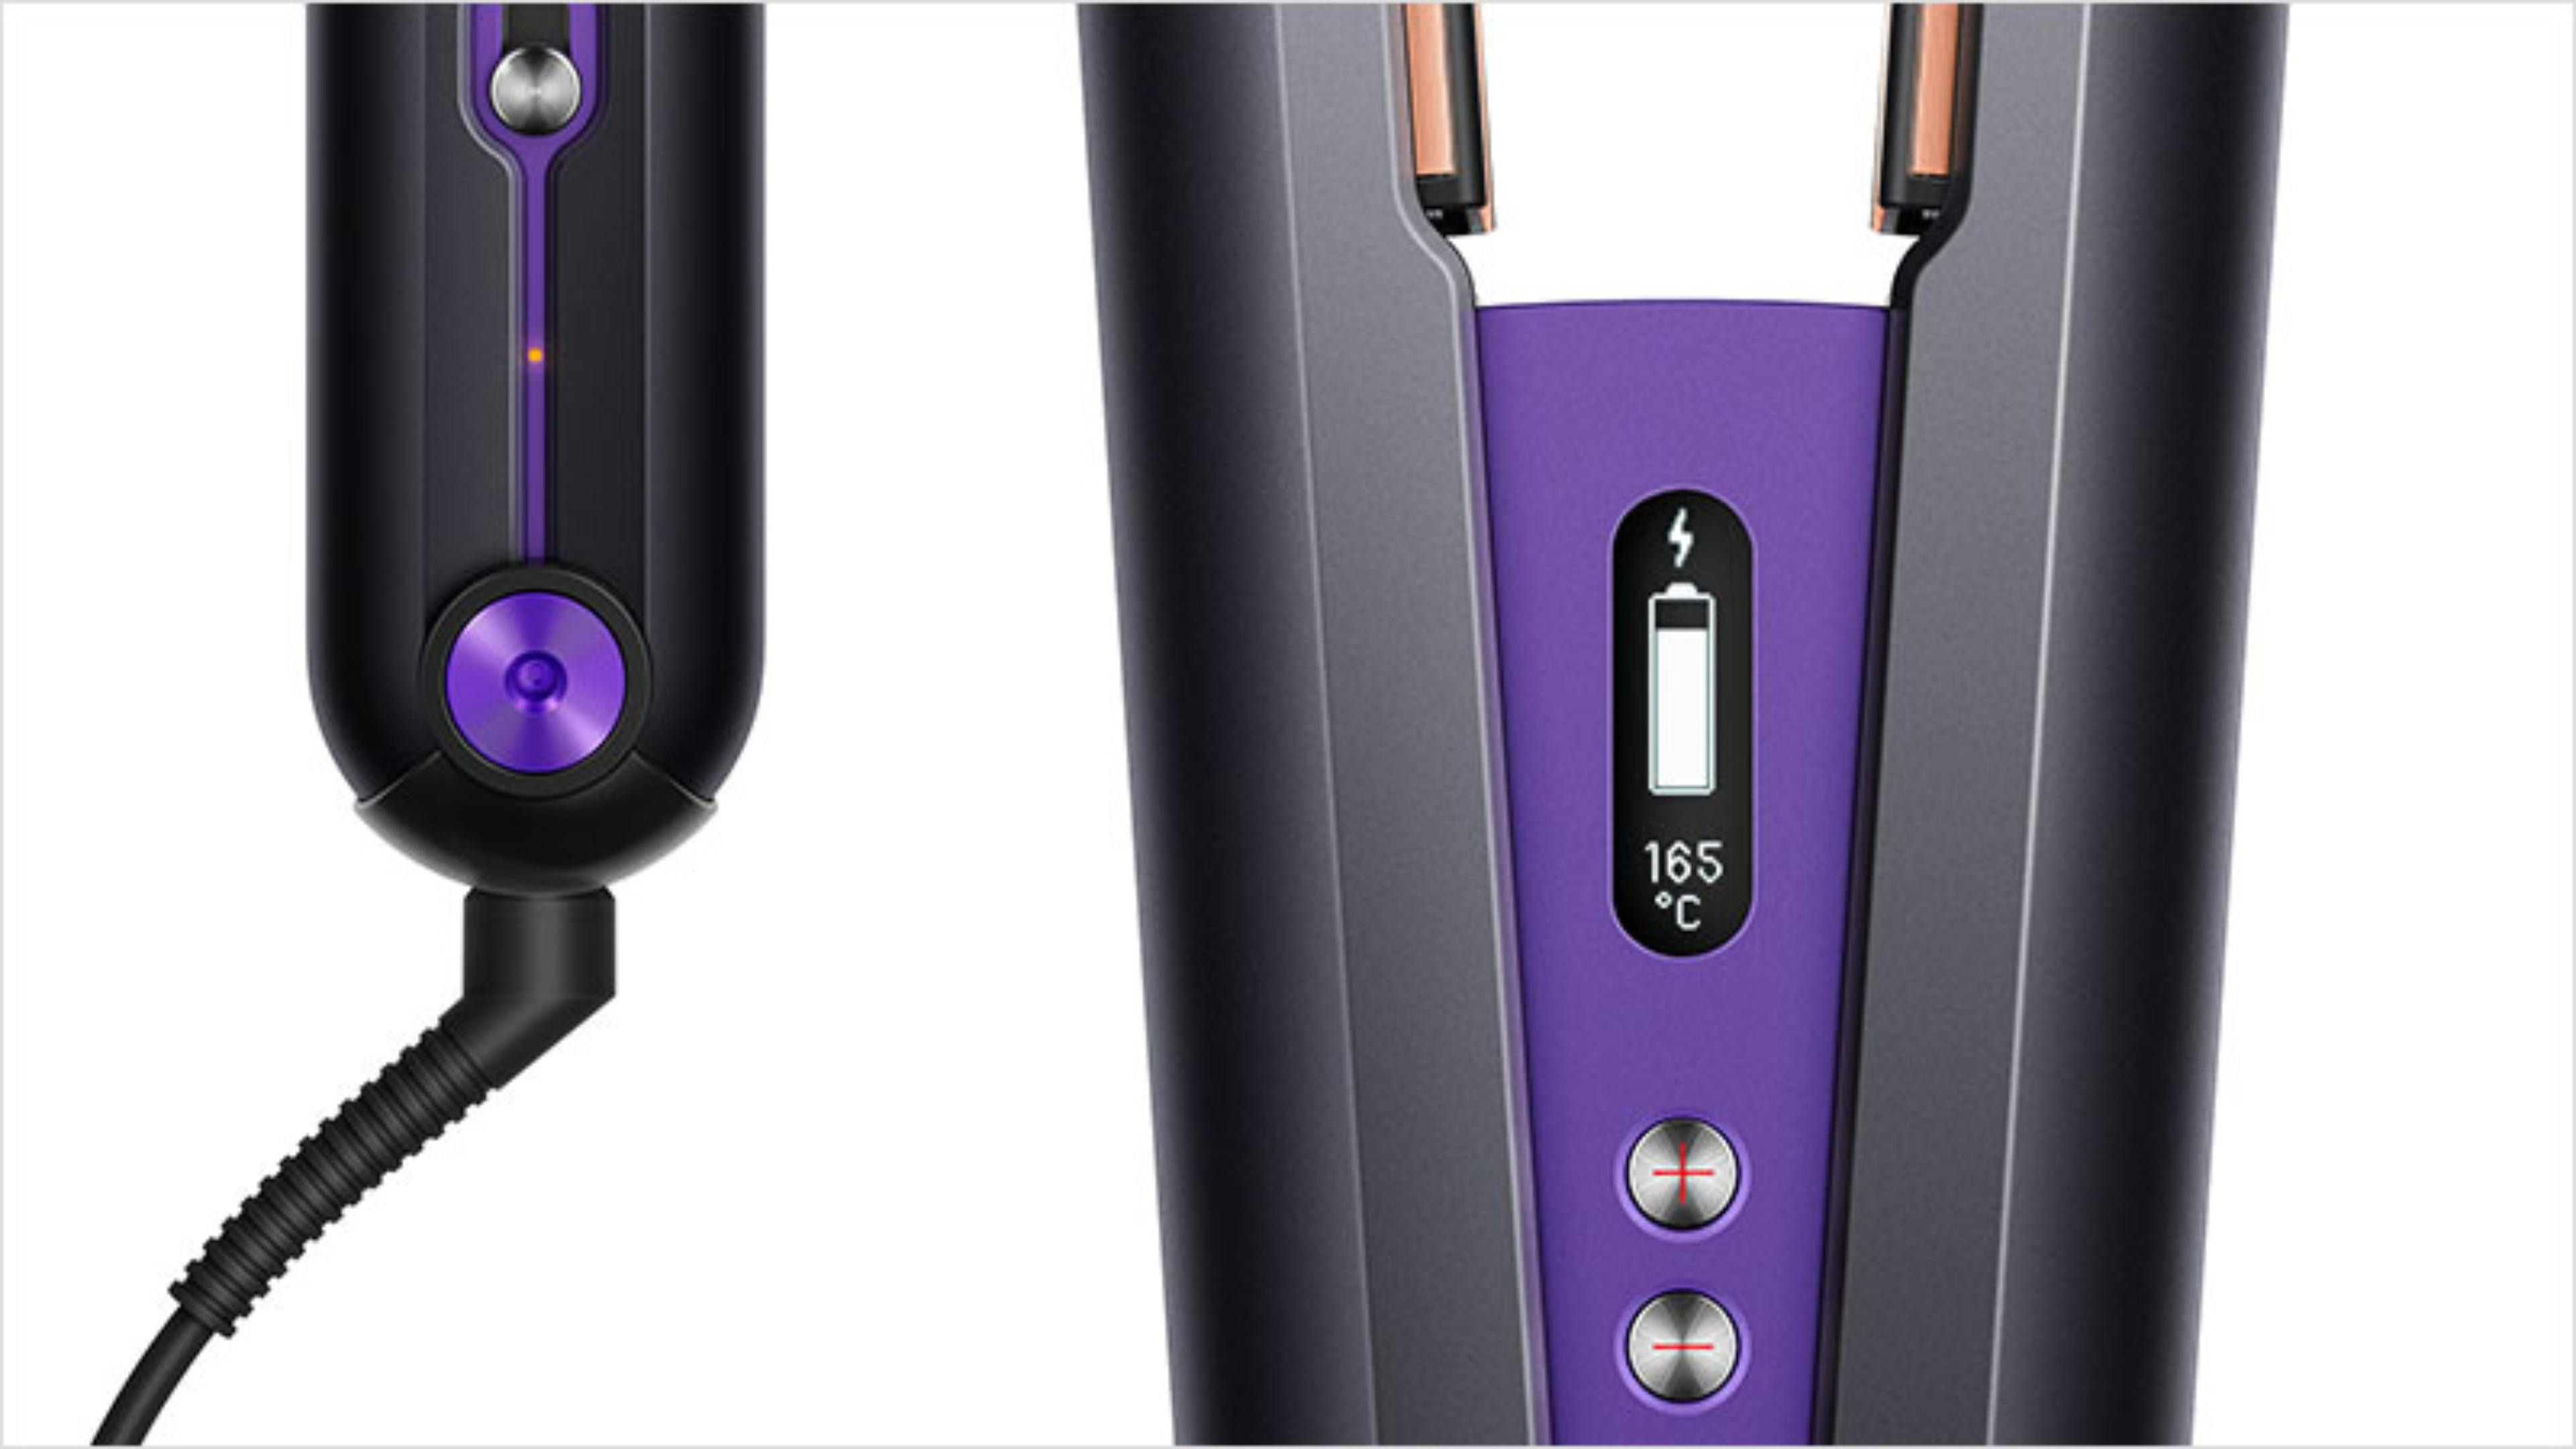 Close up of the charging socket and battery charge display on the Dyson Corrale hair straightener